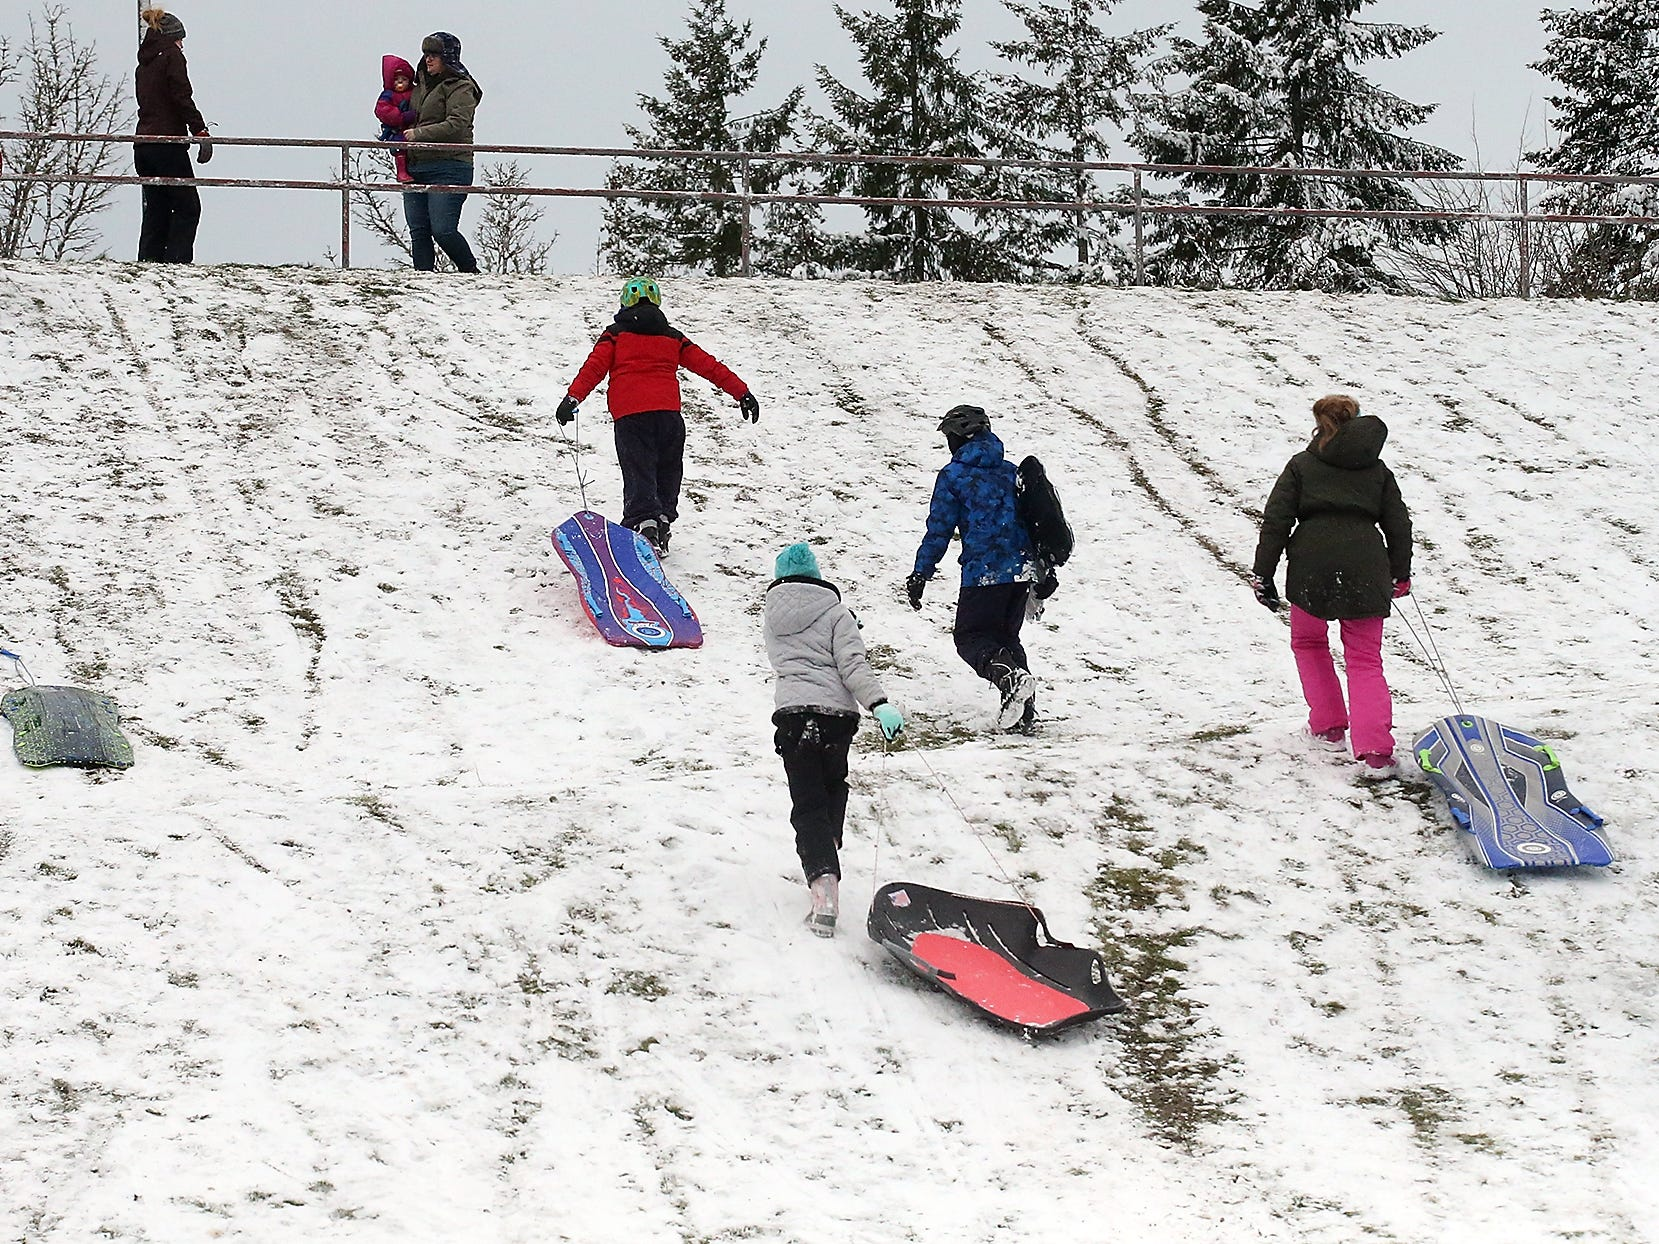 Sledders climb back up the hill to make another run at Silver Ridge Elementary School in Silverdale on Monday, February 4, 2019.